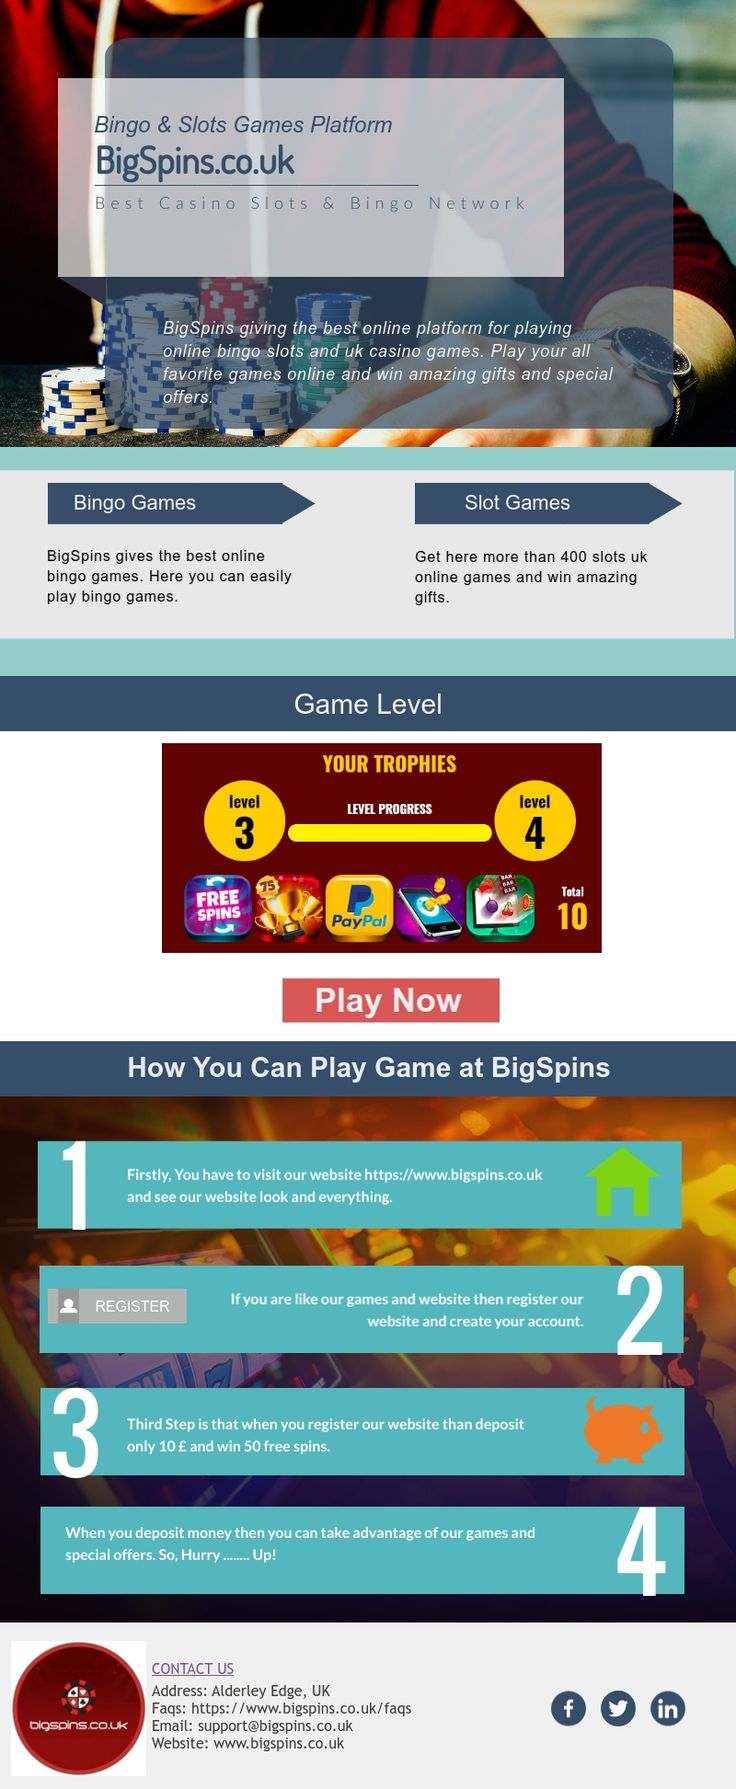 BigSpins gives the best bingo slot games and UK casino